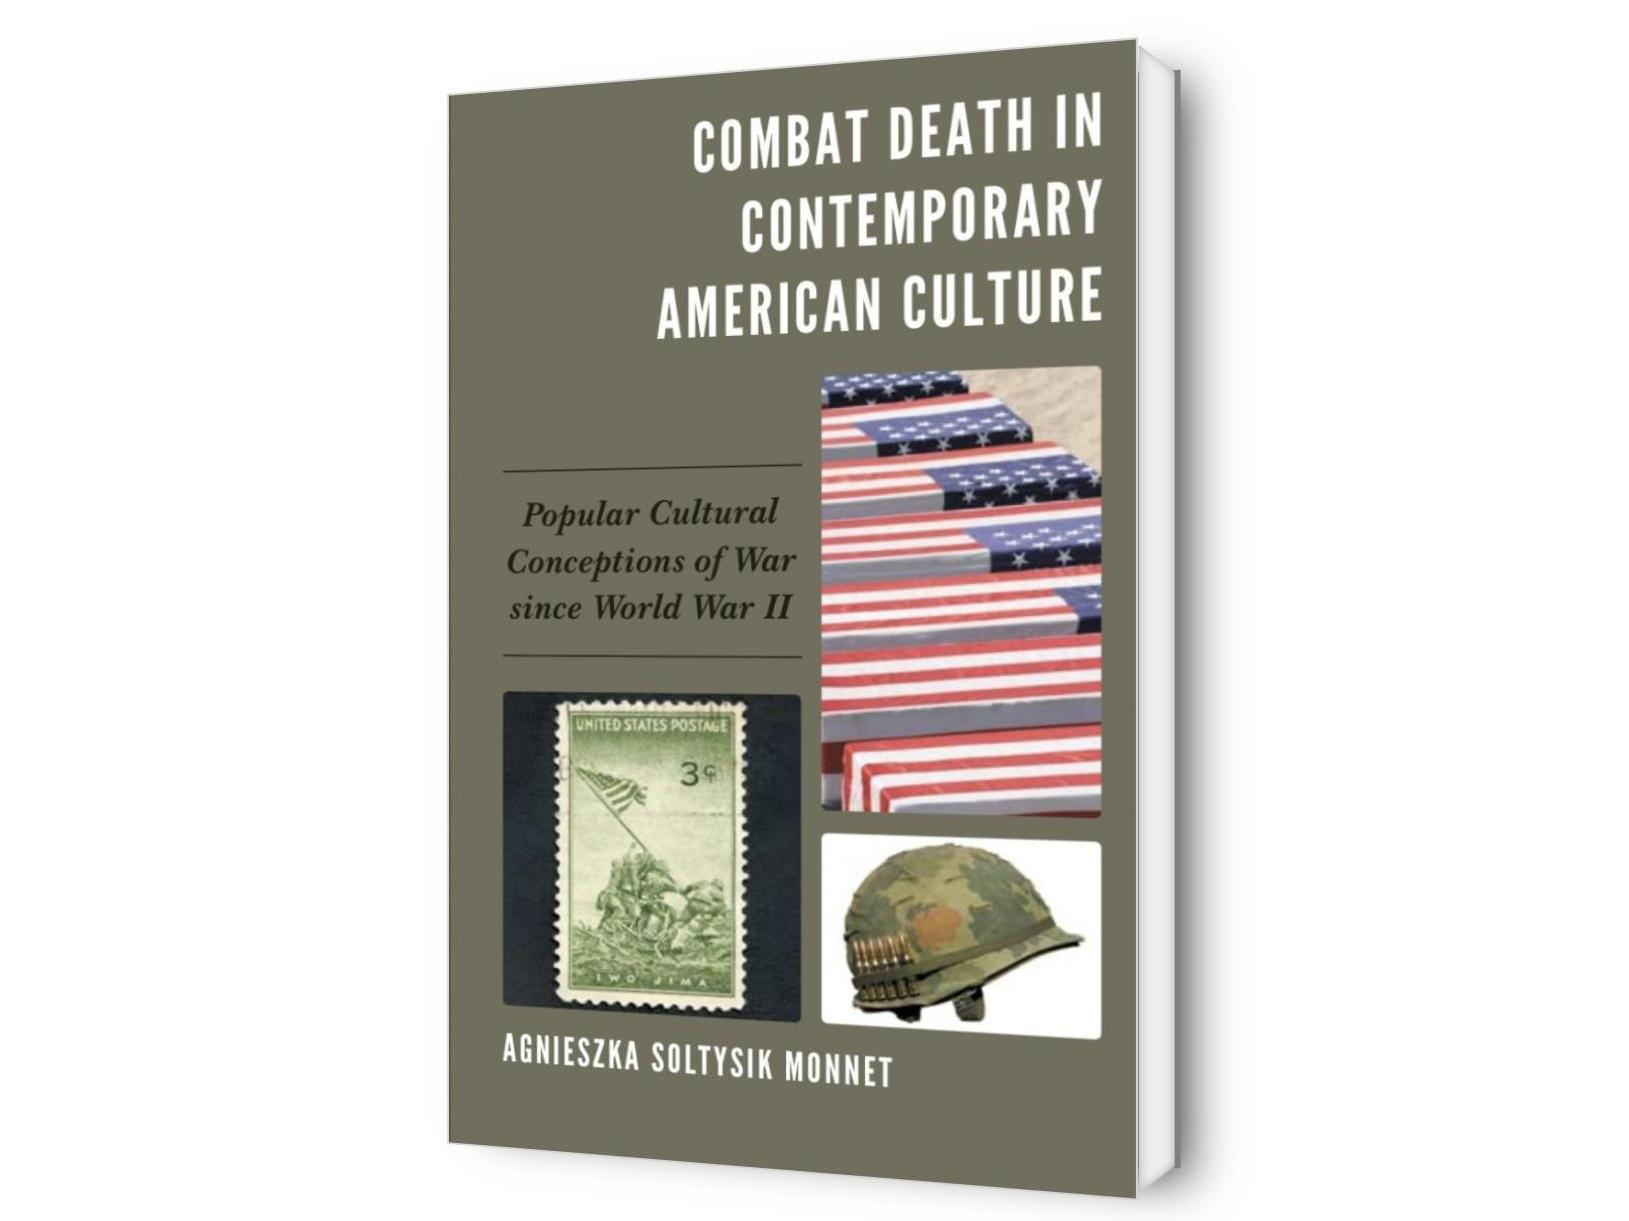 Combat Death in Contemporary American Culture: Popular Conceptions of War since WWII